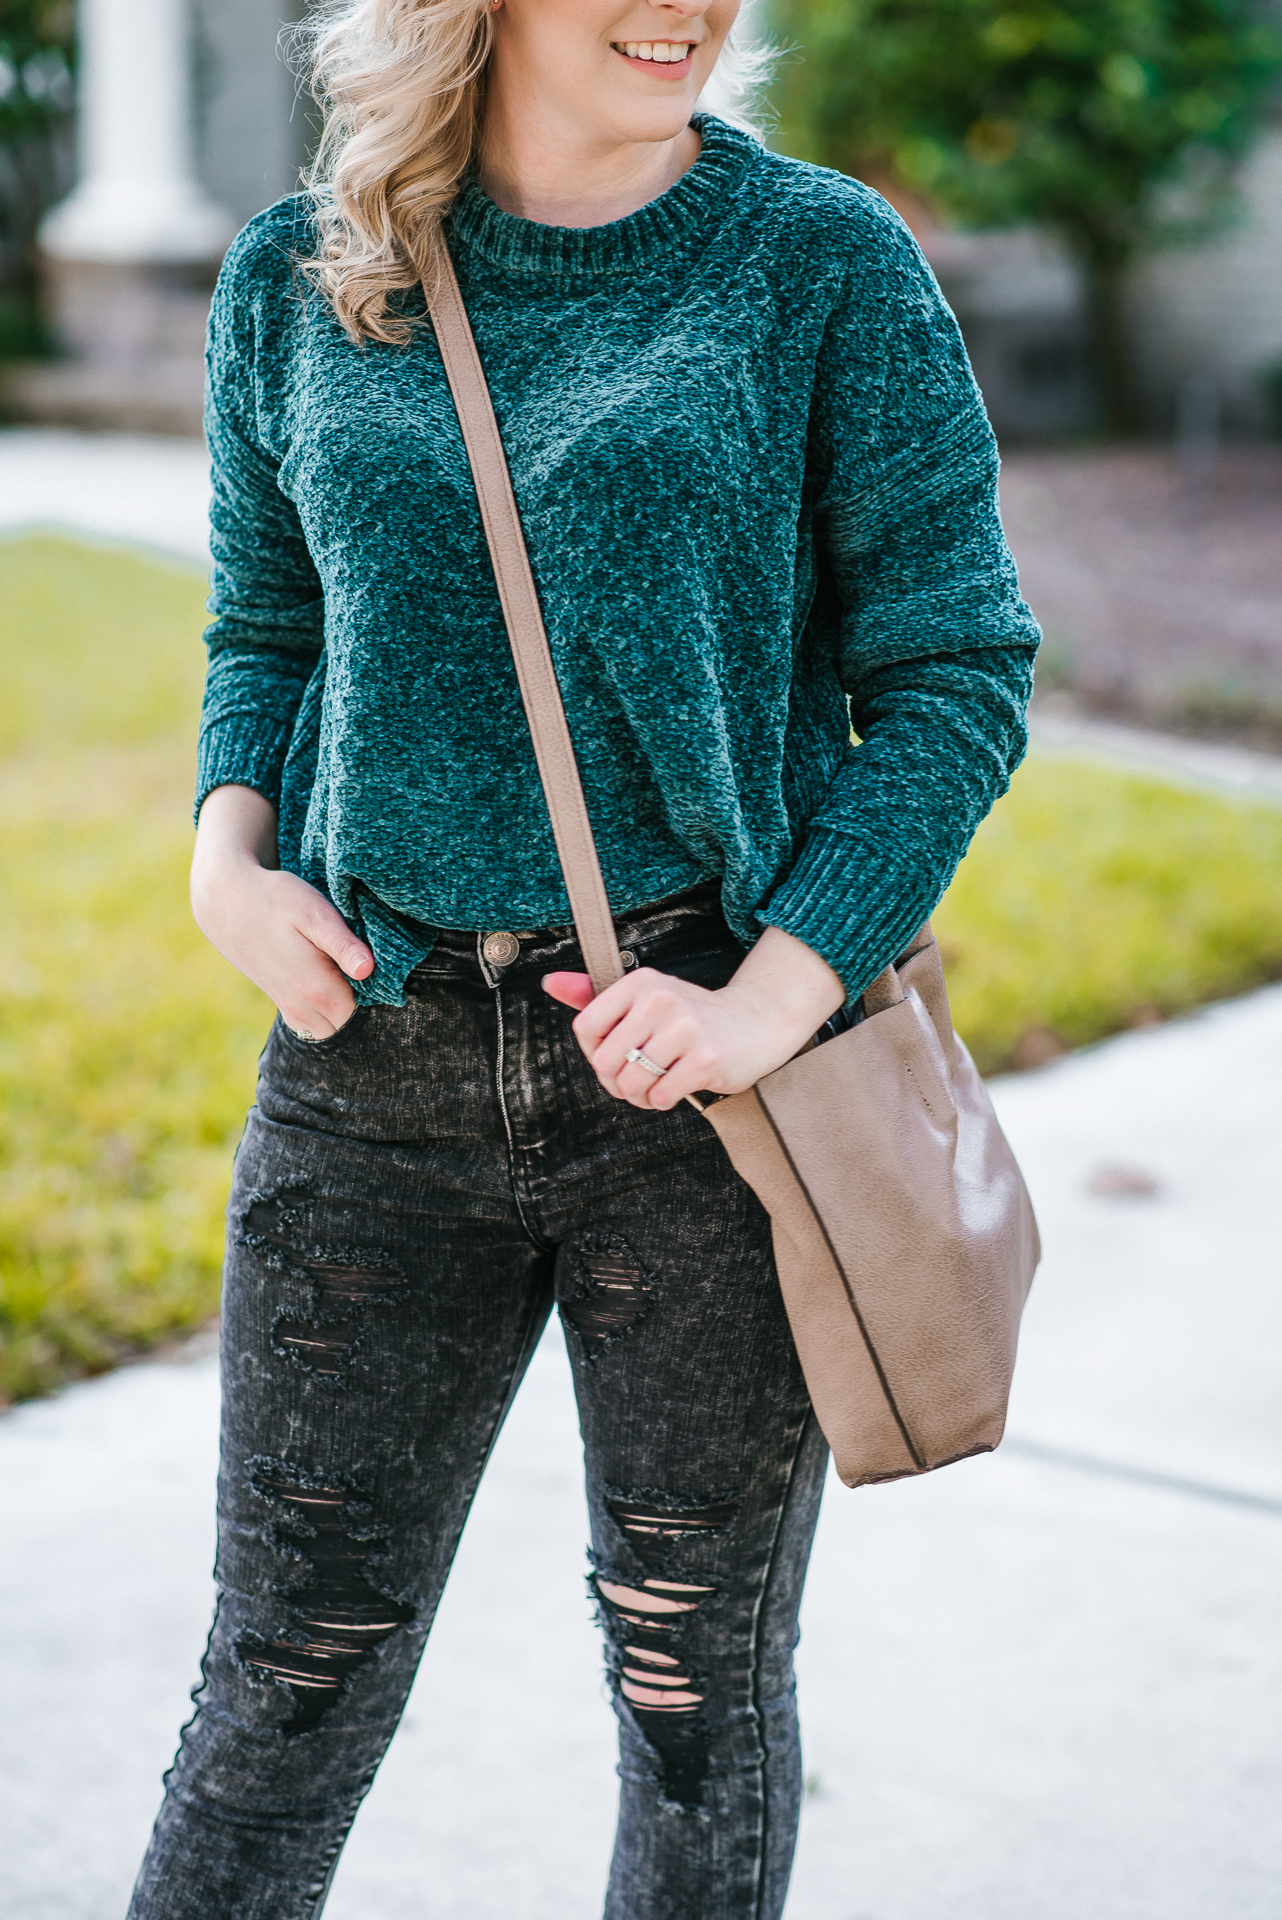 A Unicorn of a Different Color & My Favorite Chenille Sweater by Houston fashion blogger Gracefully Sassy